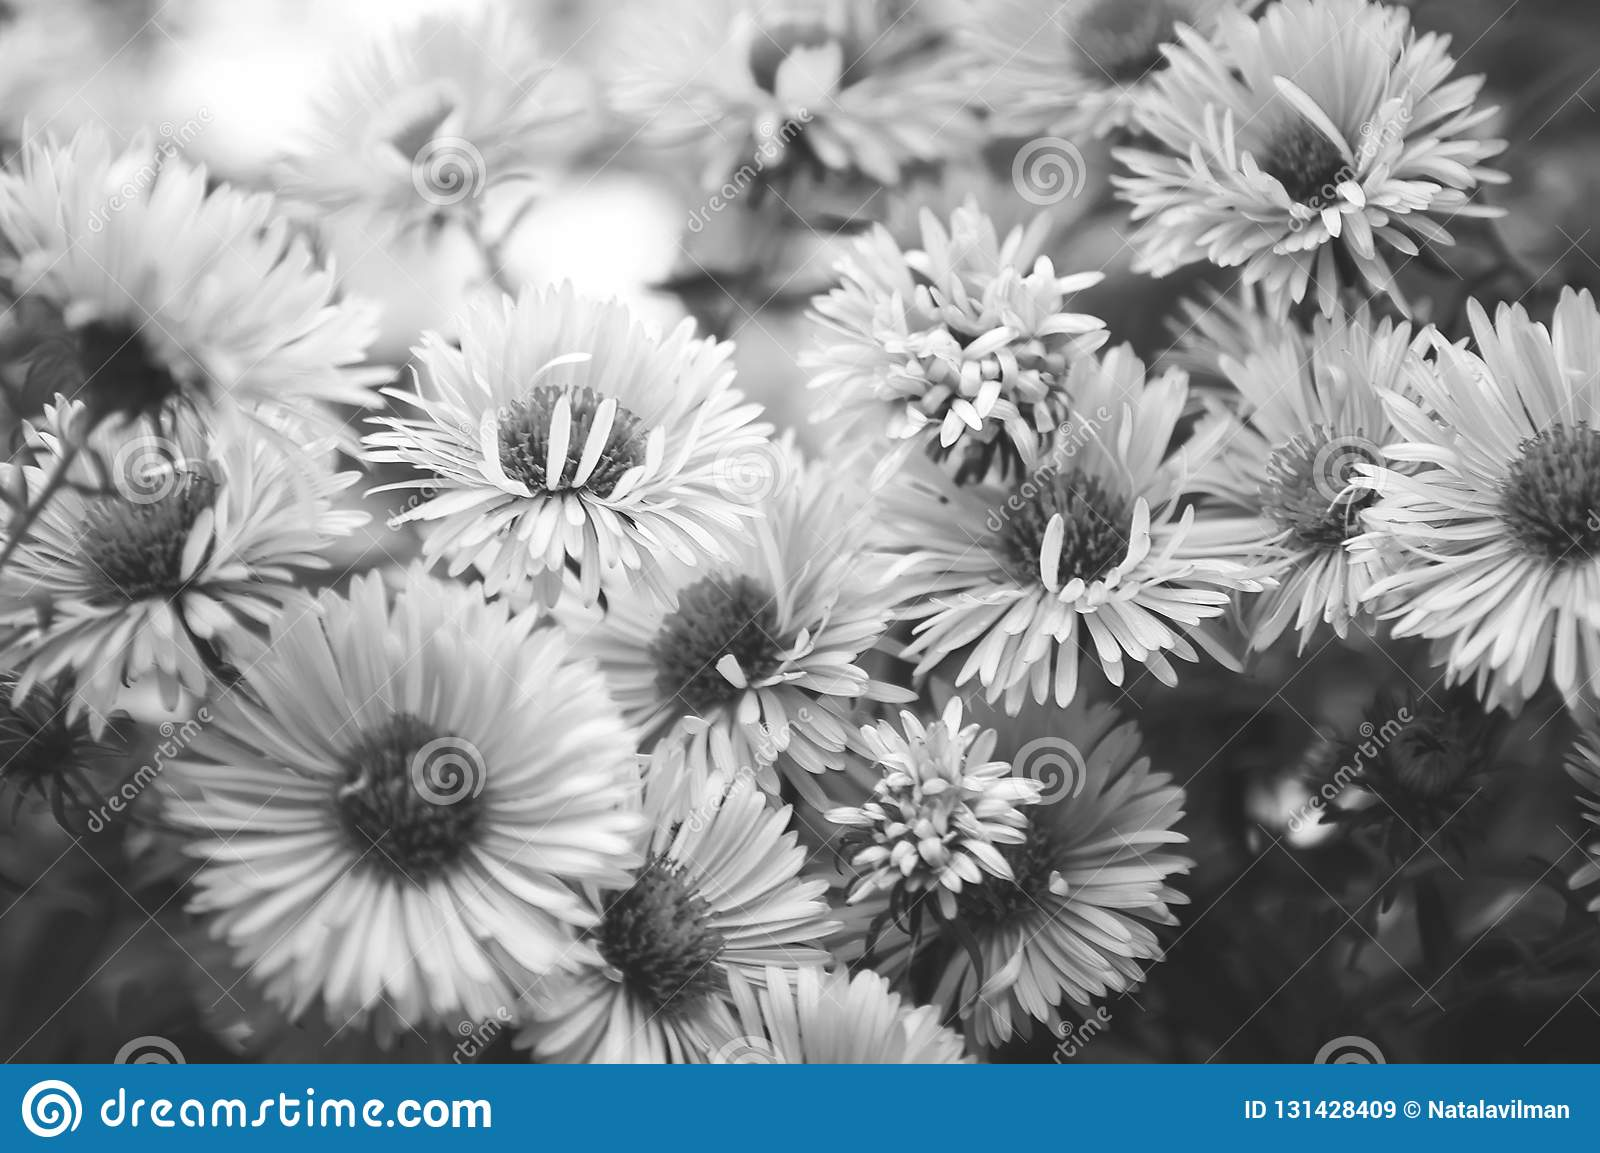 Autumn Chrysanthemums Black And White Photography Beautiful Wallpaper For Your Desktop Or Smartphone Stock Image Image Of Chrysanthemums Detail 131428409